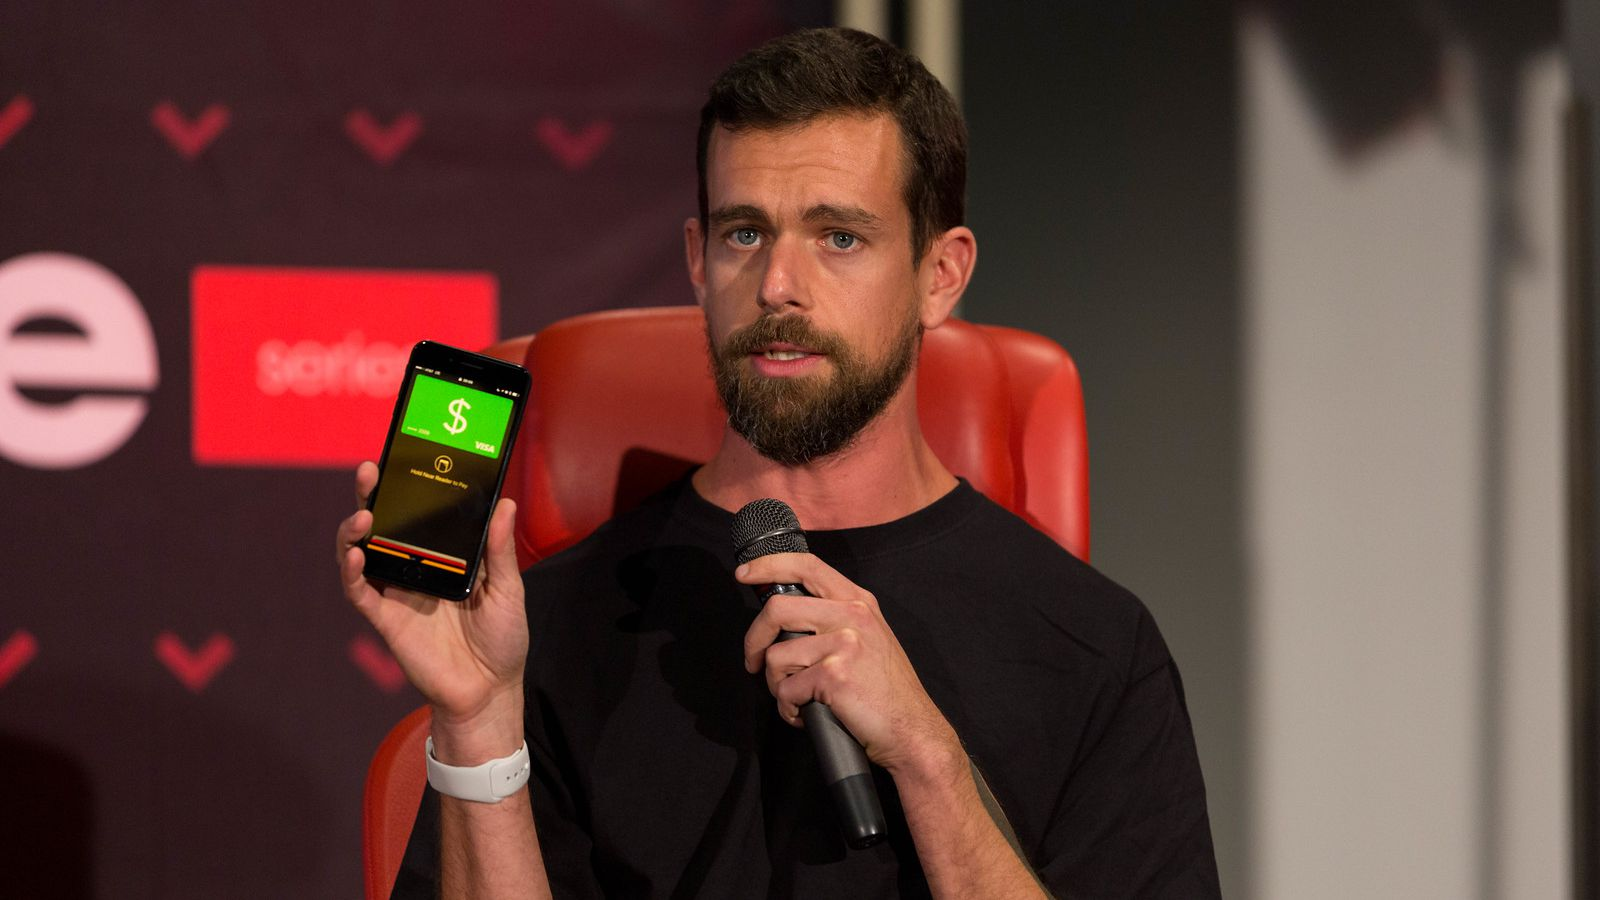 This is one of Jack Dorsey's early sketches of what became a $7 billion business